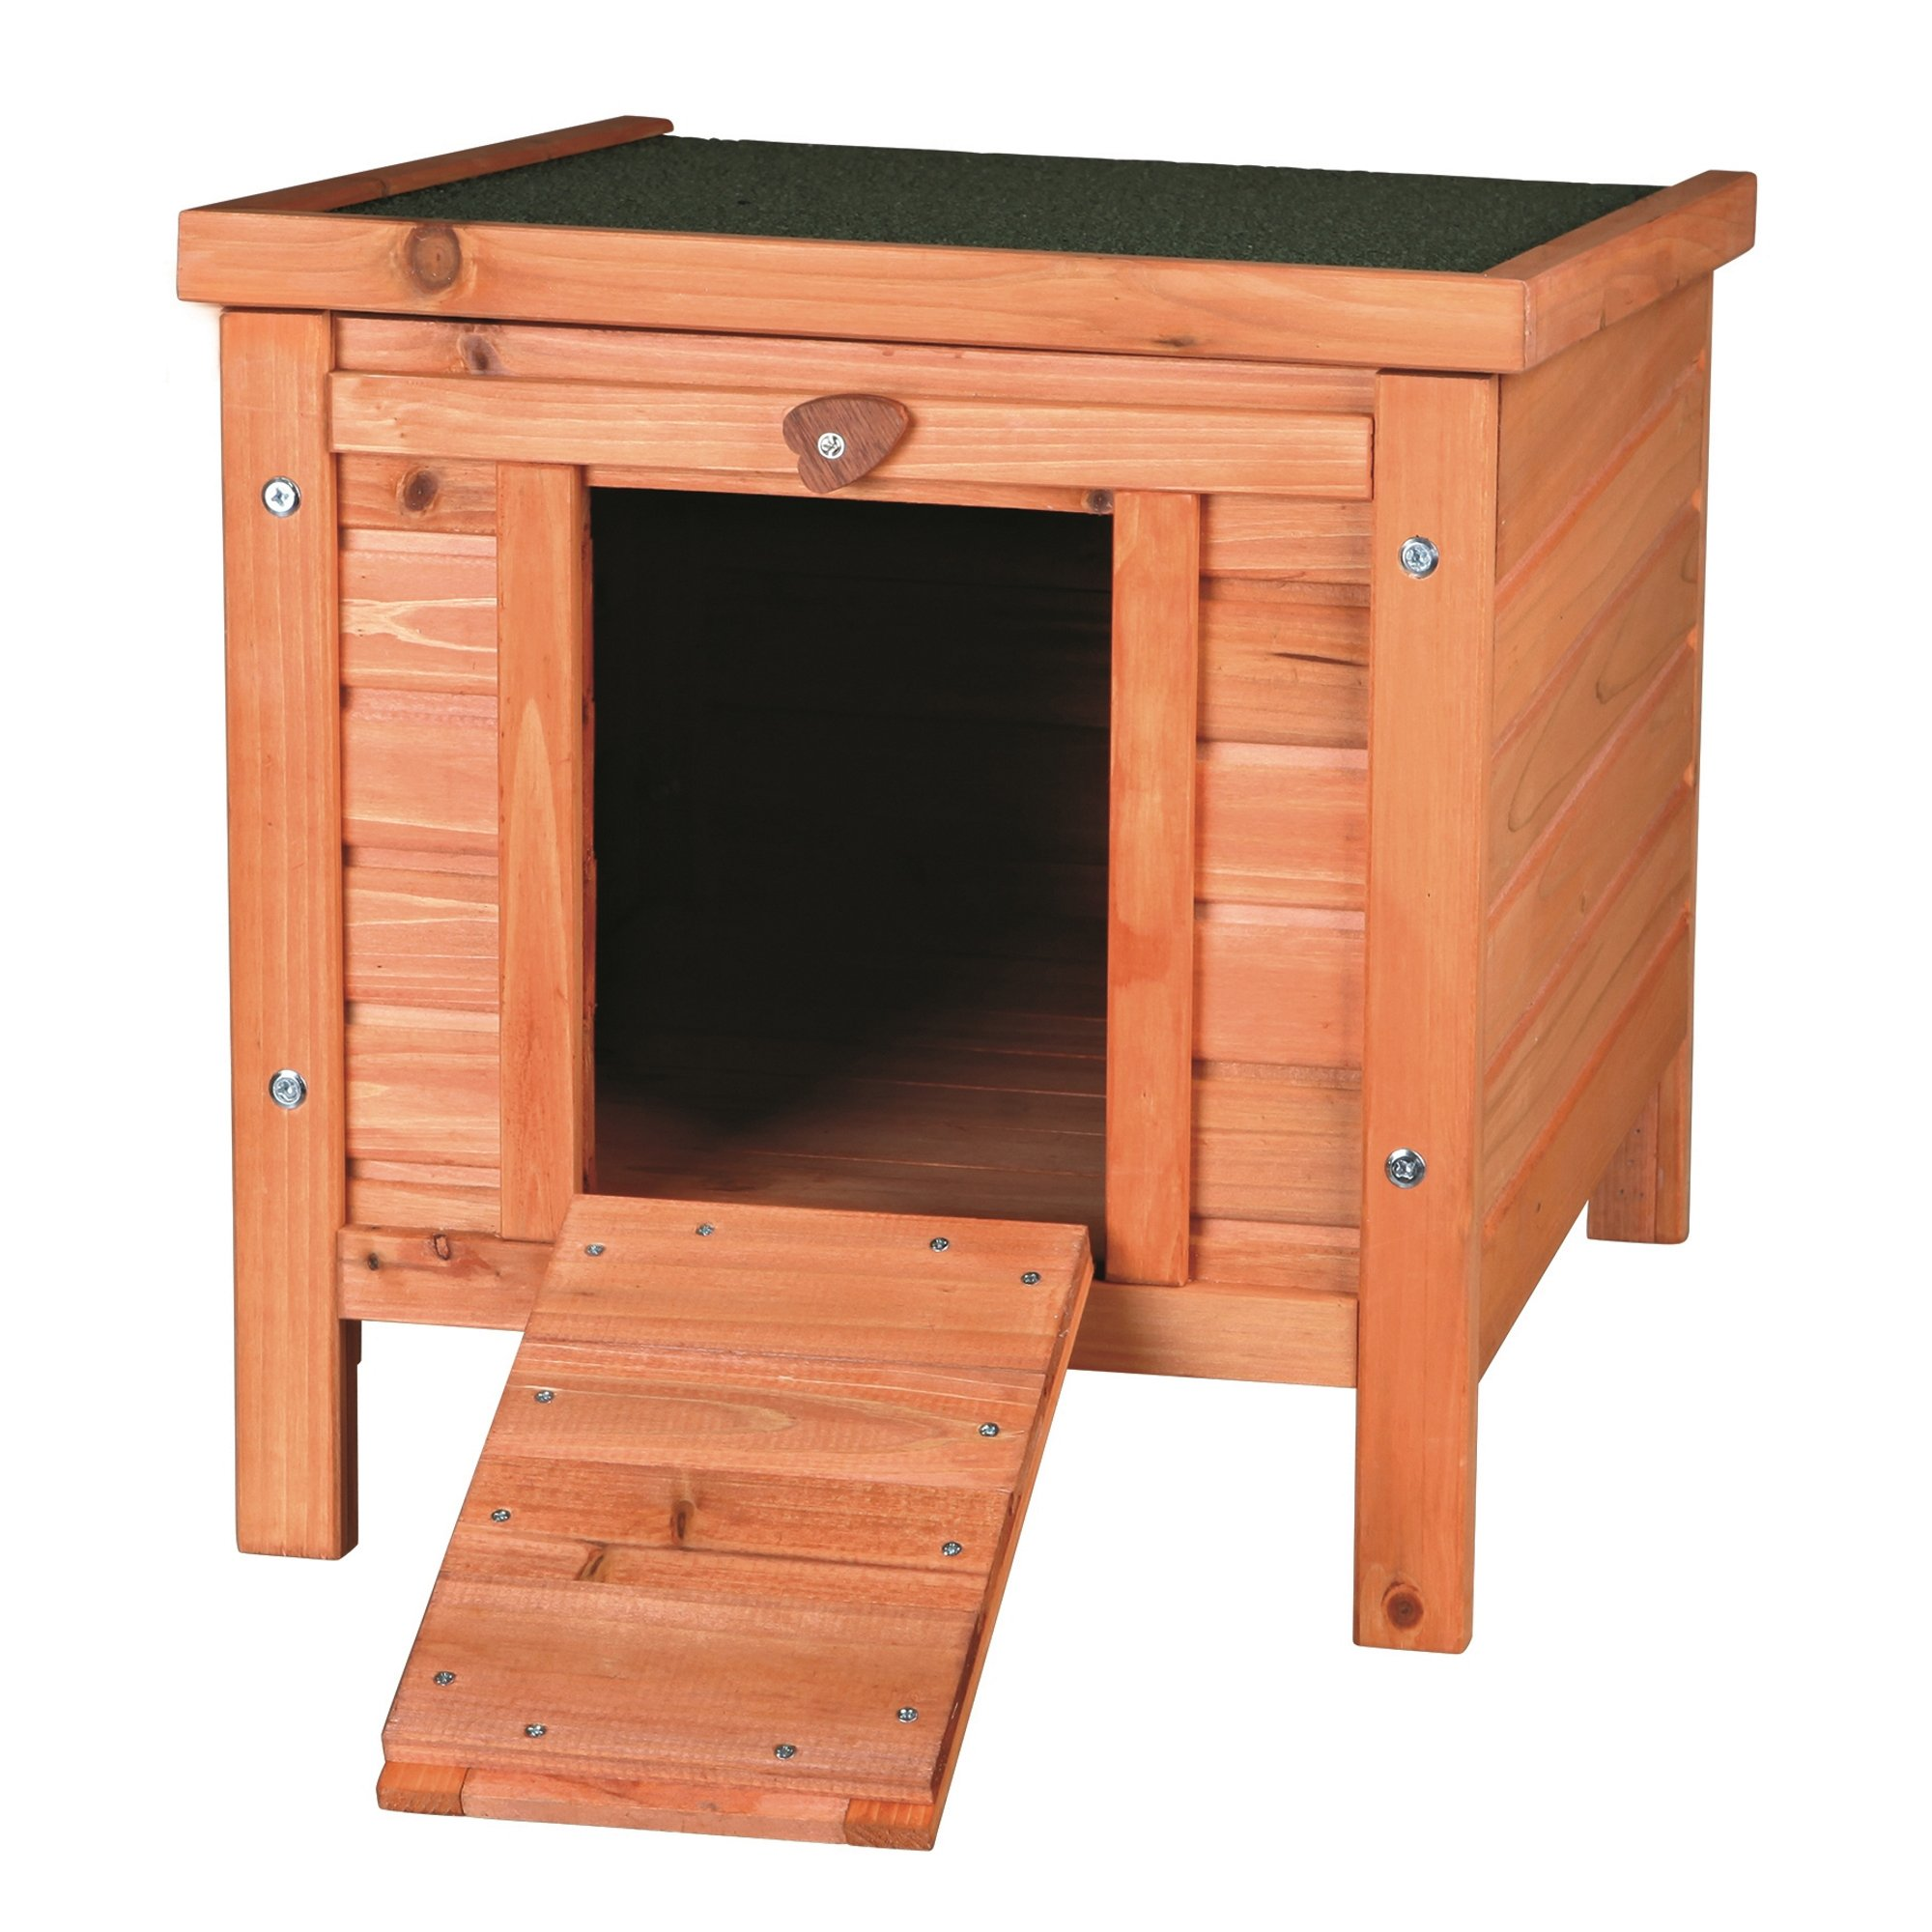 TRIXIE Pet Products Small Animal Home with Outdoor Run